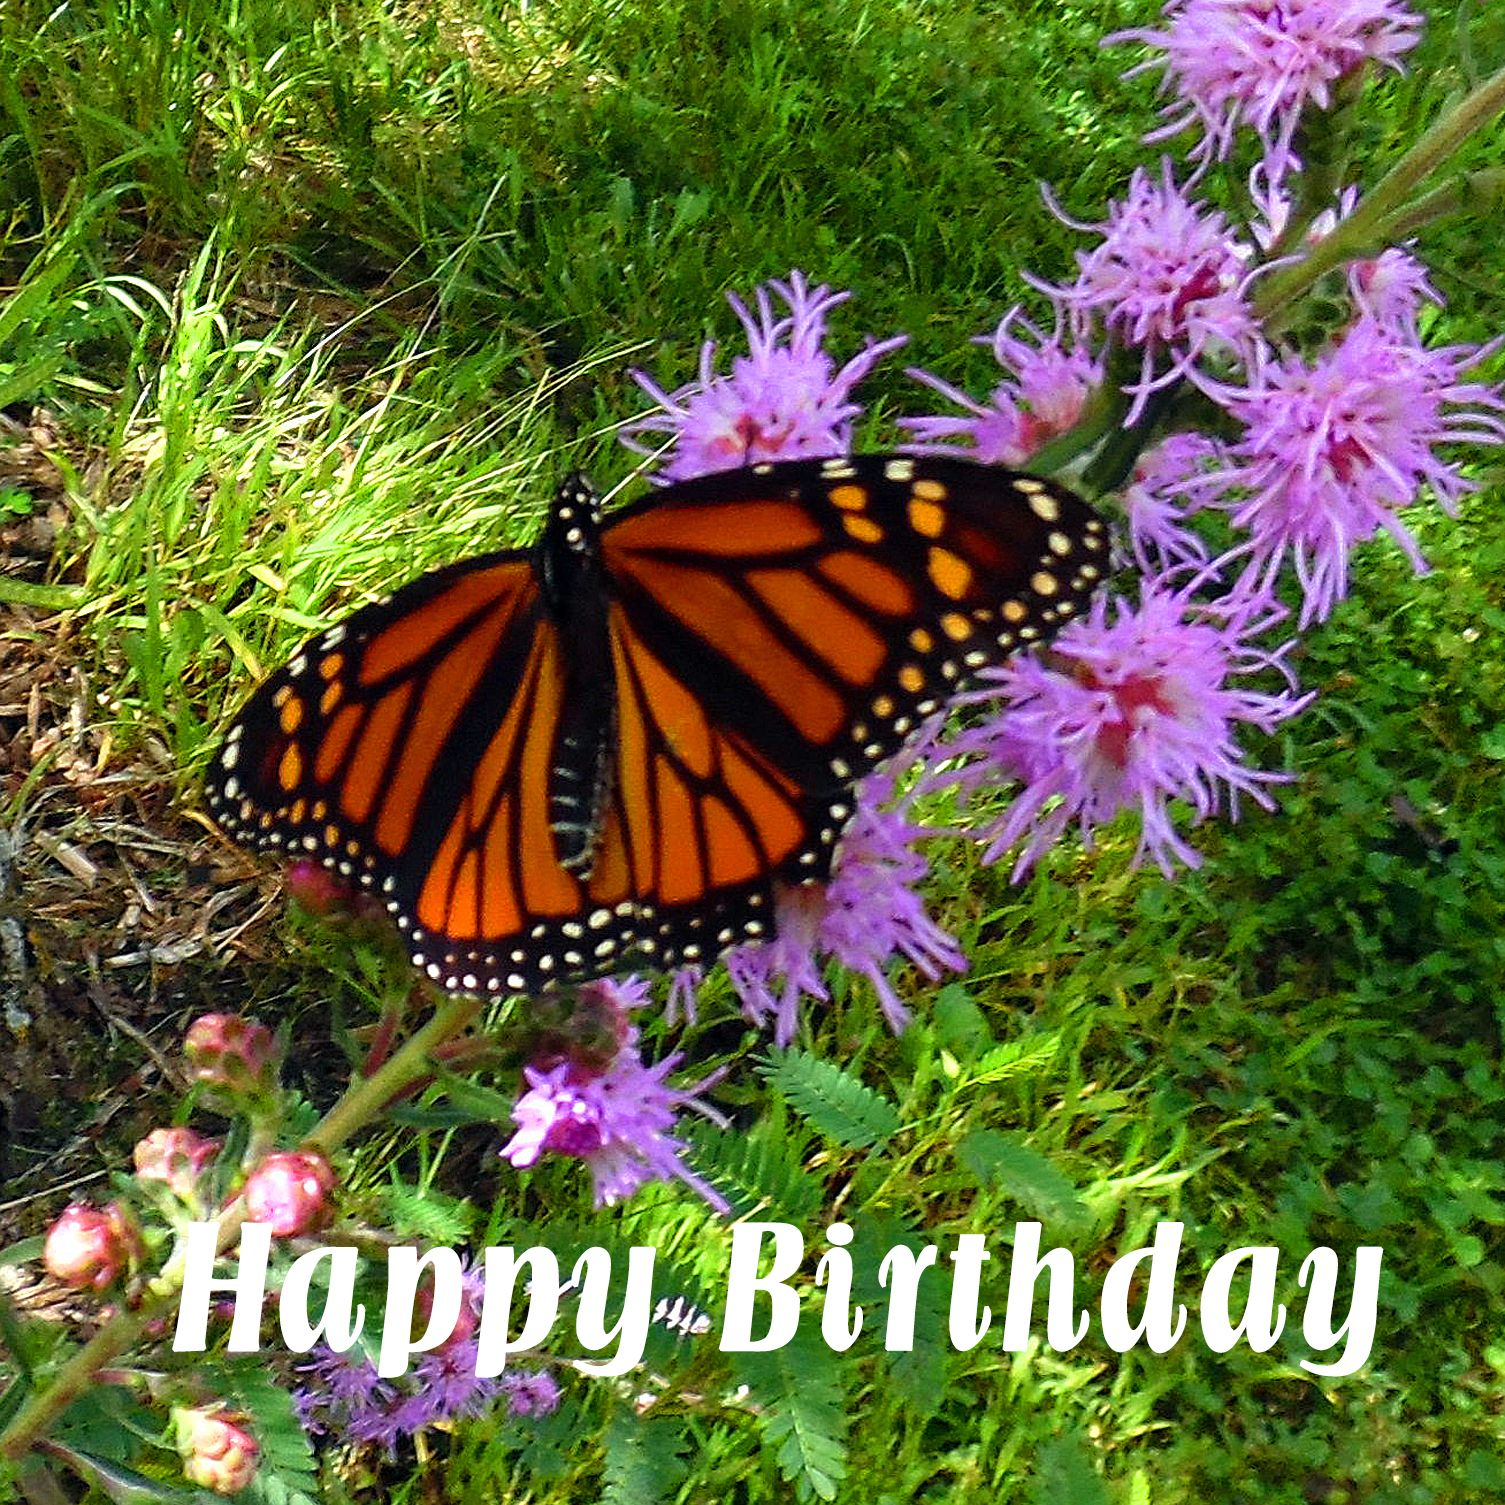 Happy Birthday Jimmy Wynn The Pecan Park Eagle Beautiful, free images gifted by the world's most generous community of photographers. happy birthday jimmy wynn the pecan